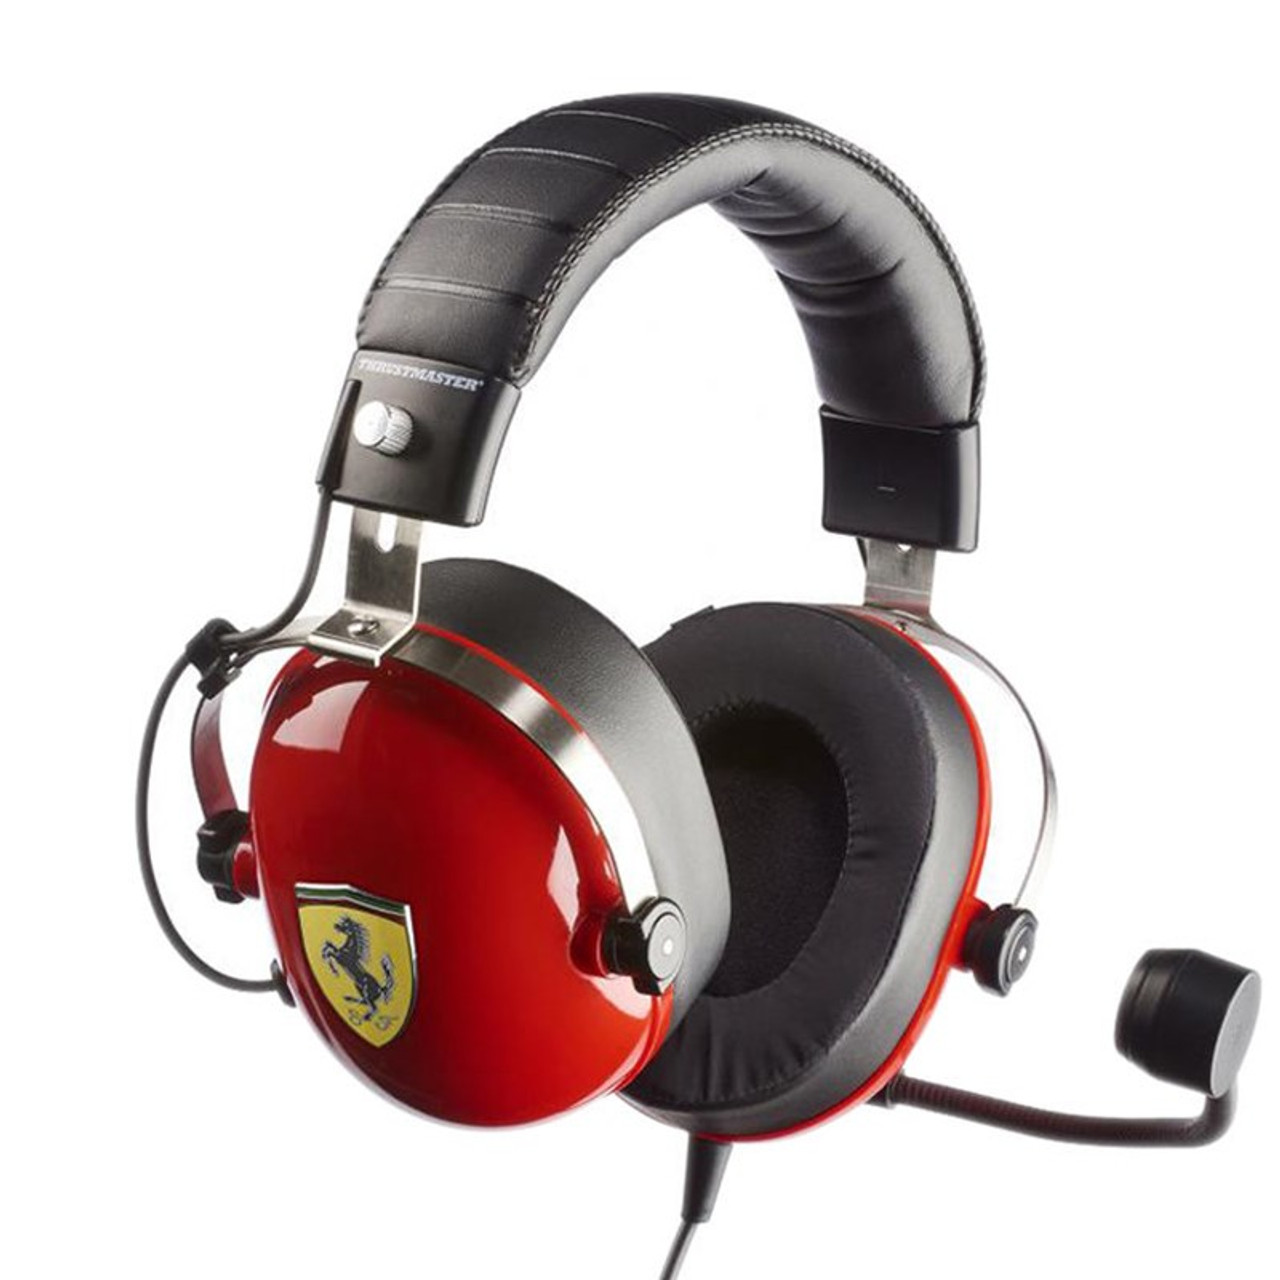 Image for Thrustmaster T-RACING Scuderia Ferrari Edition Gaming Headset CX Computer Superstore